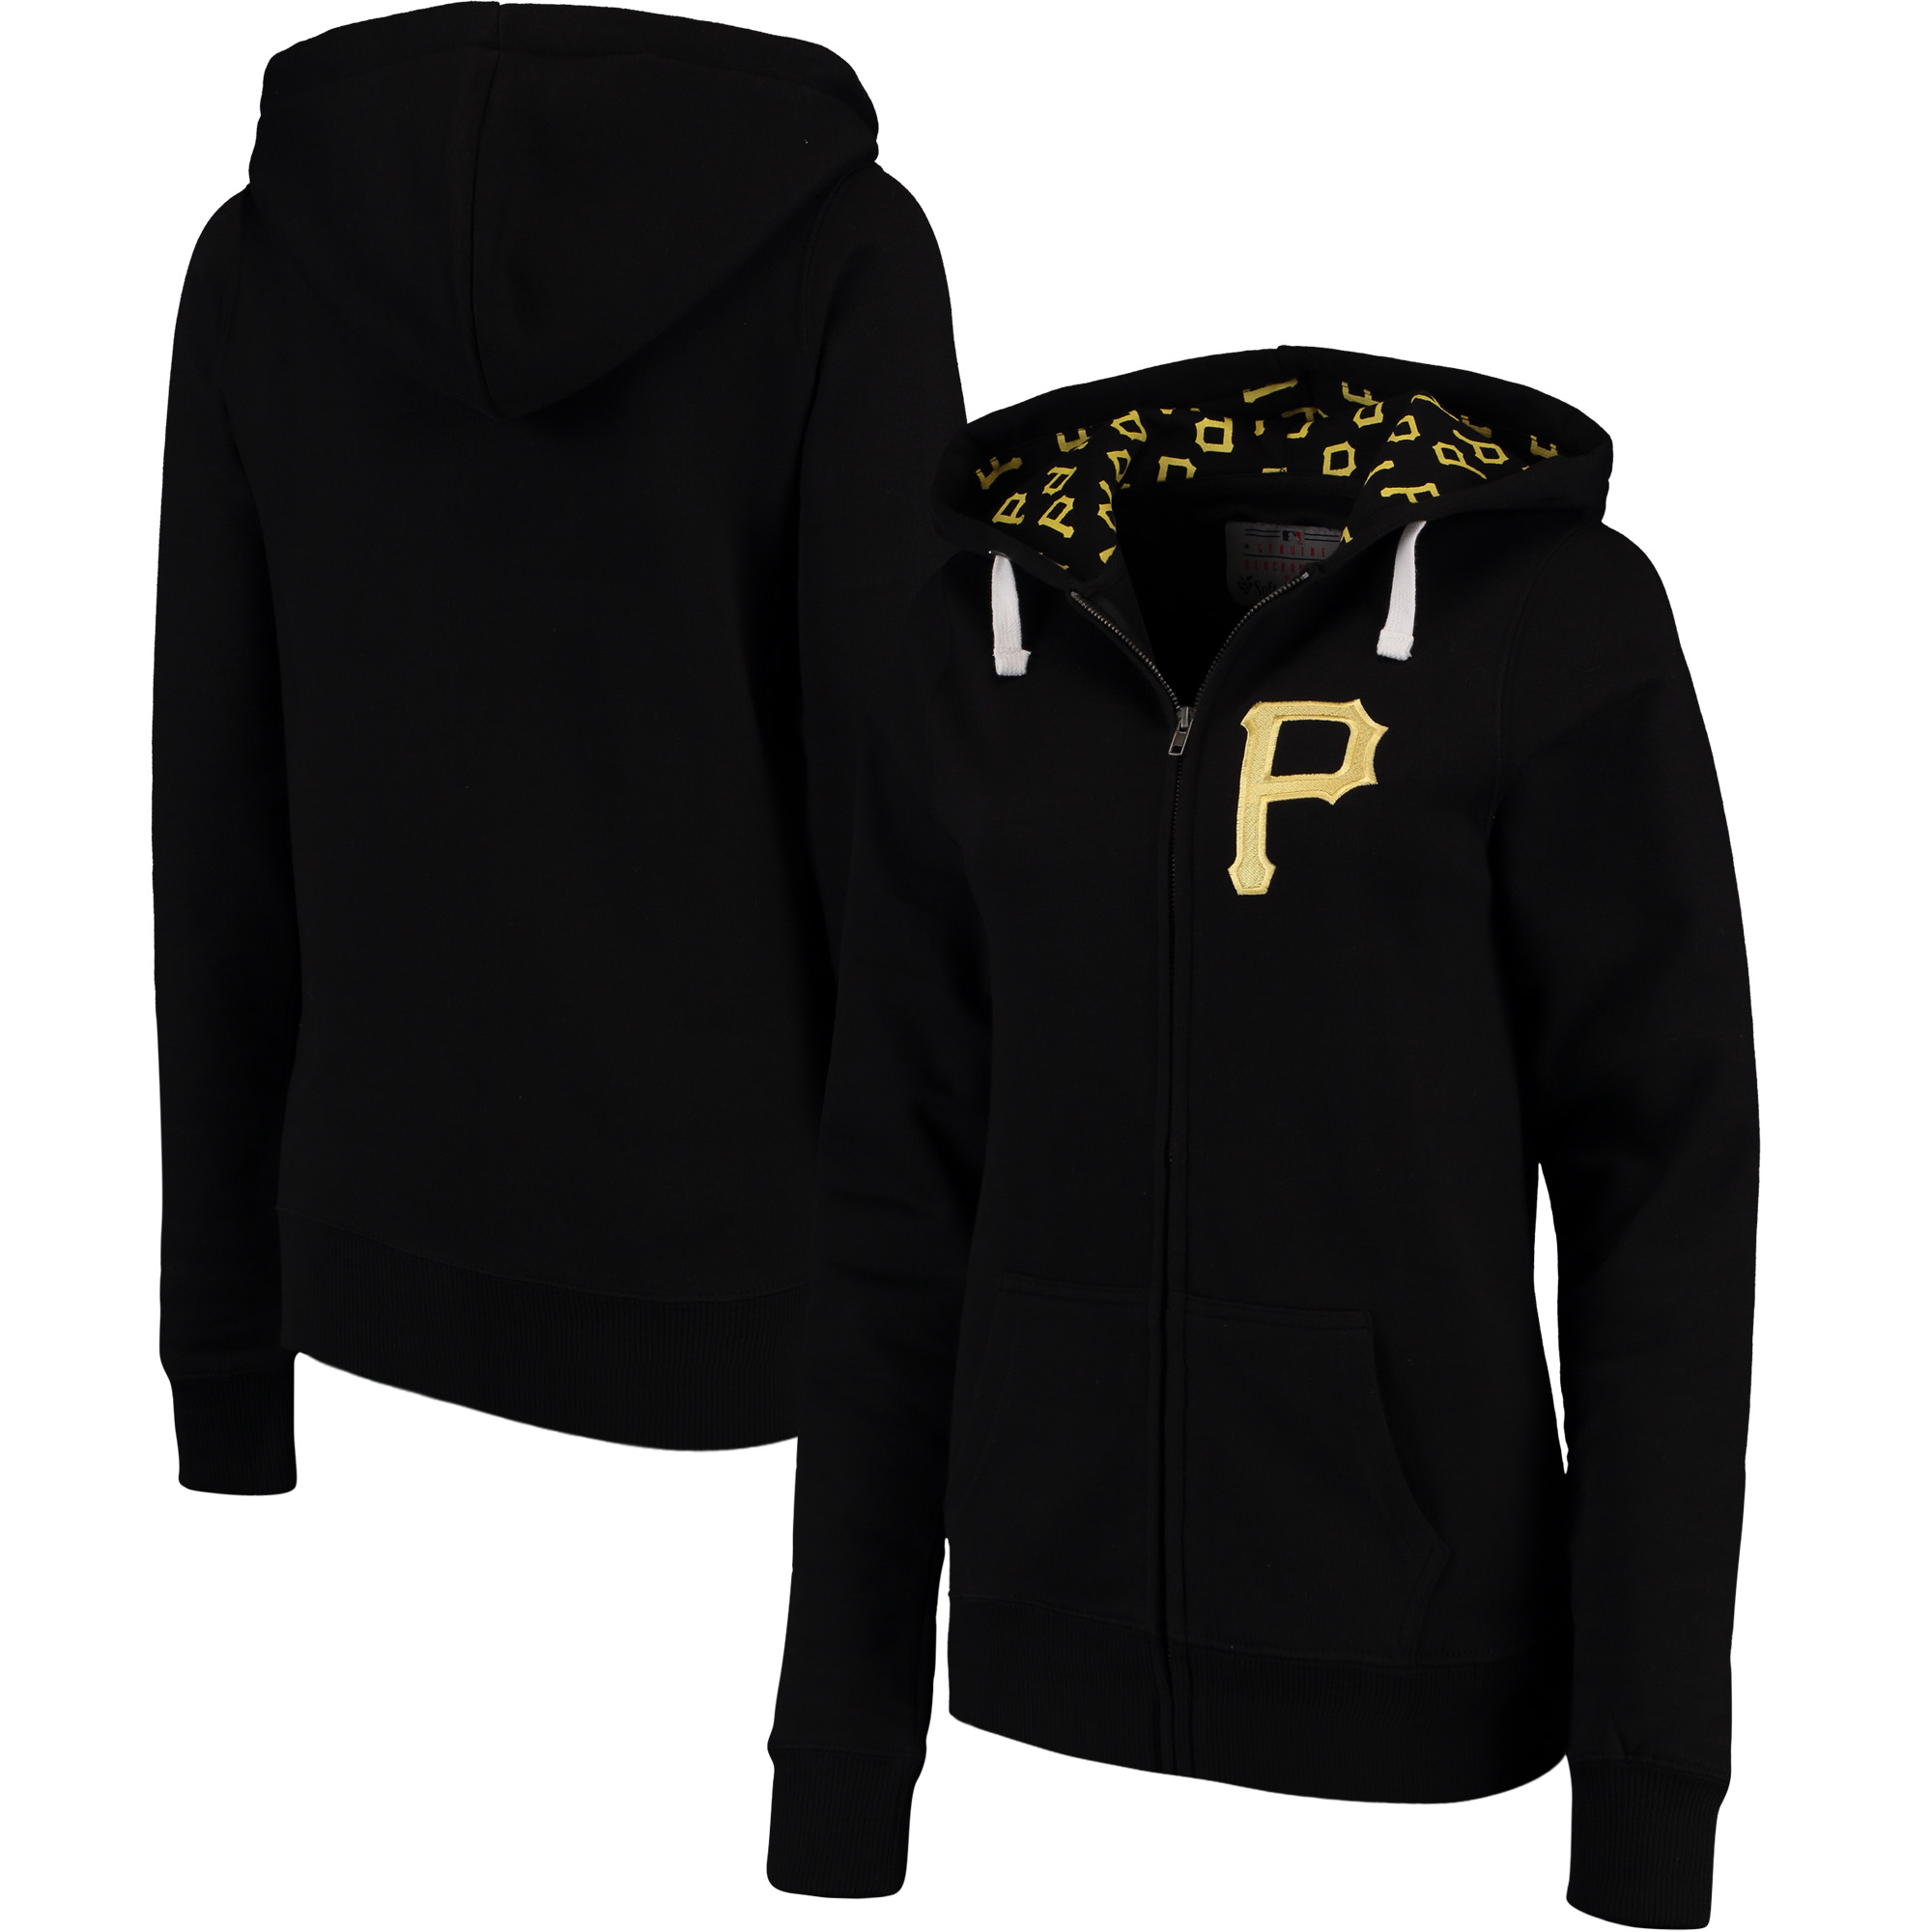 Pittsburgh Pirates Soft as a Grape Women's Line Drive Full-Zip Hoodie - Black